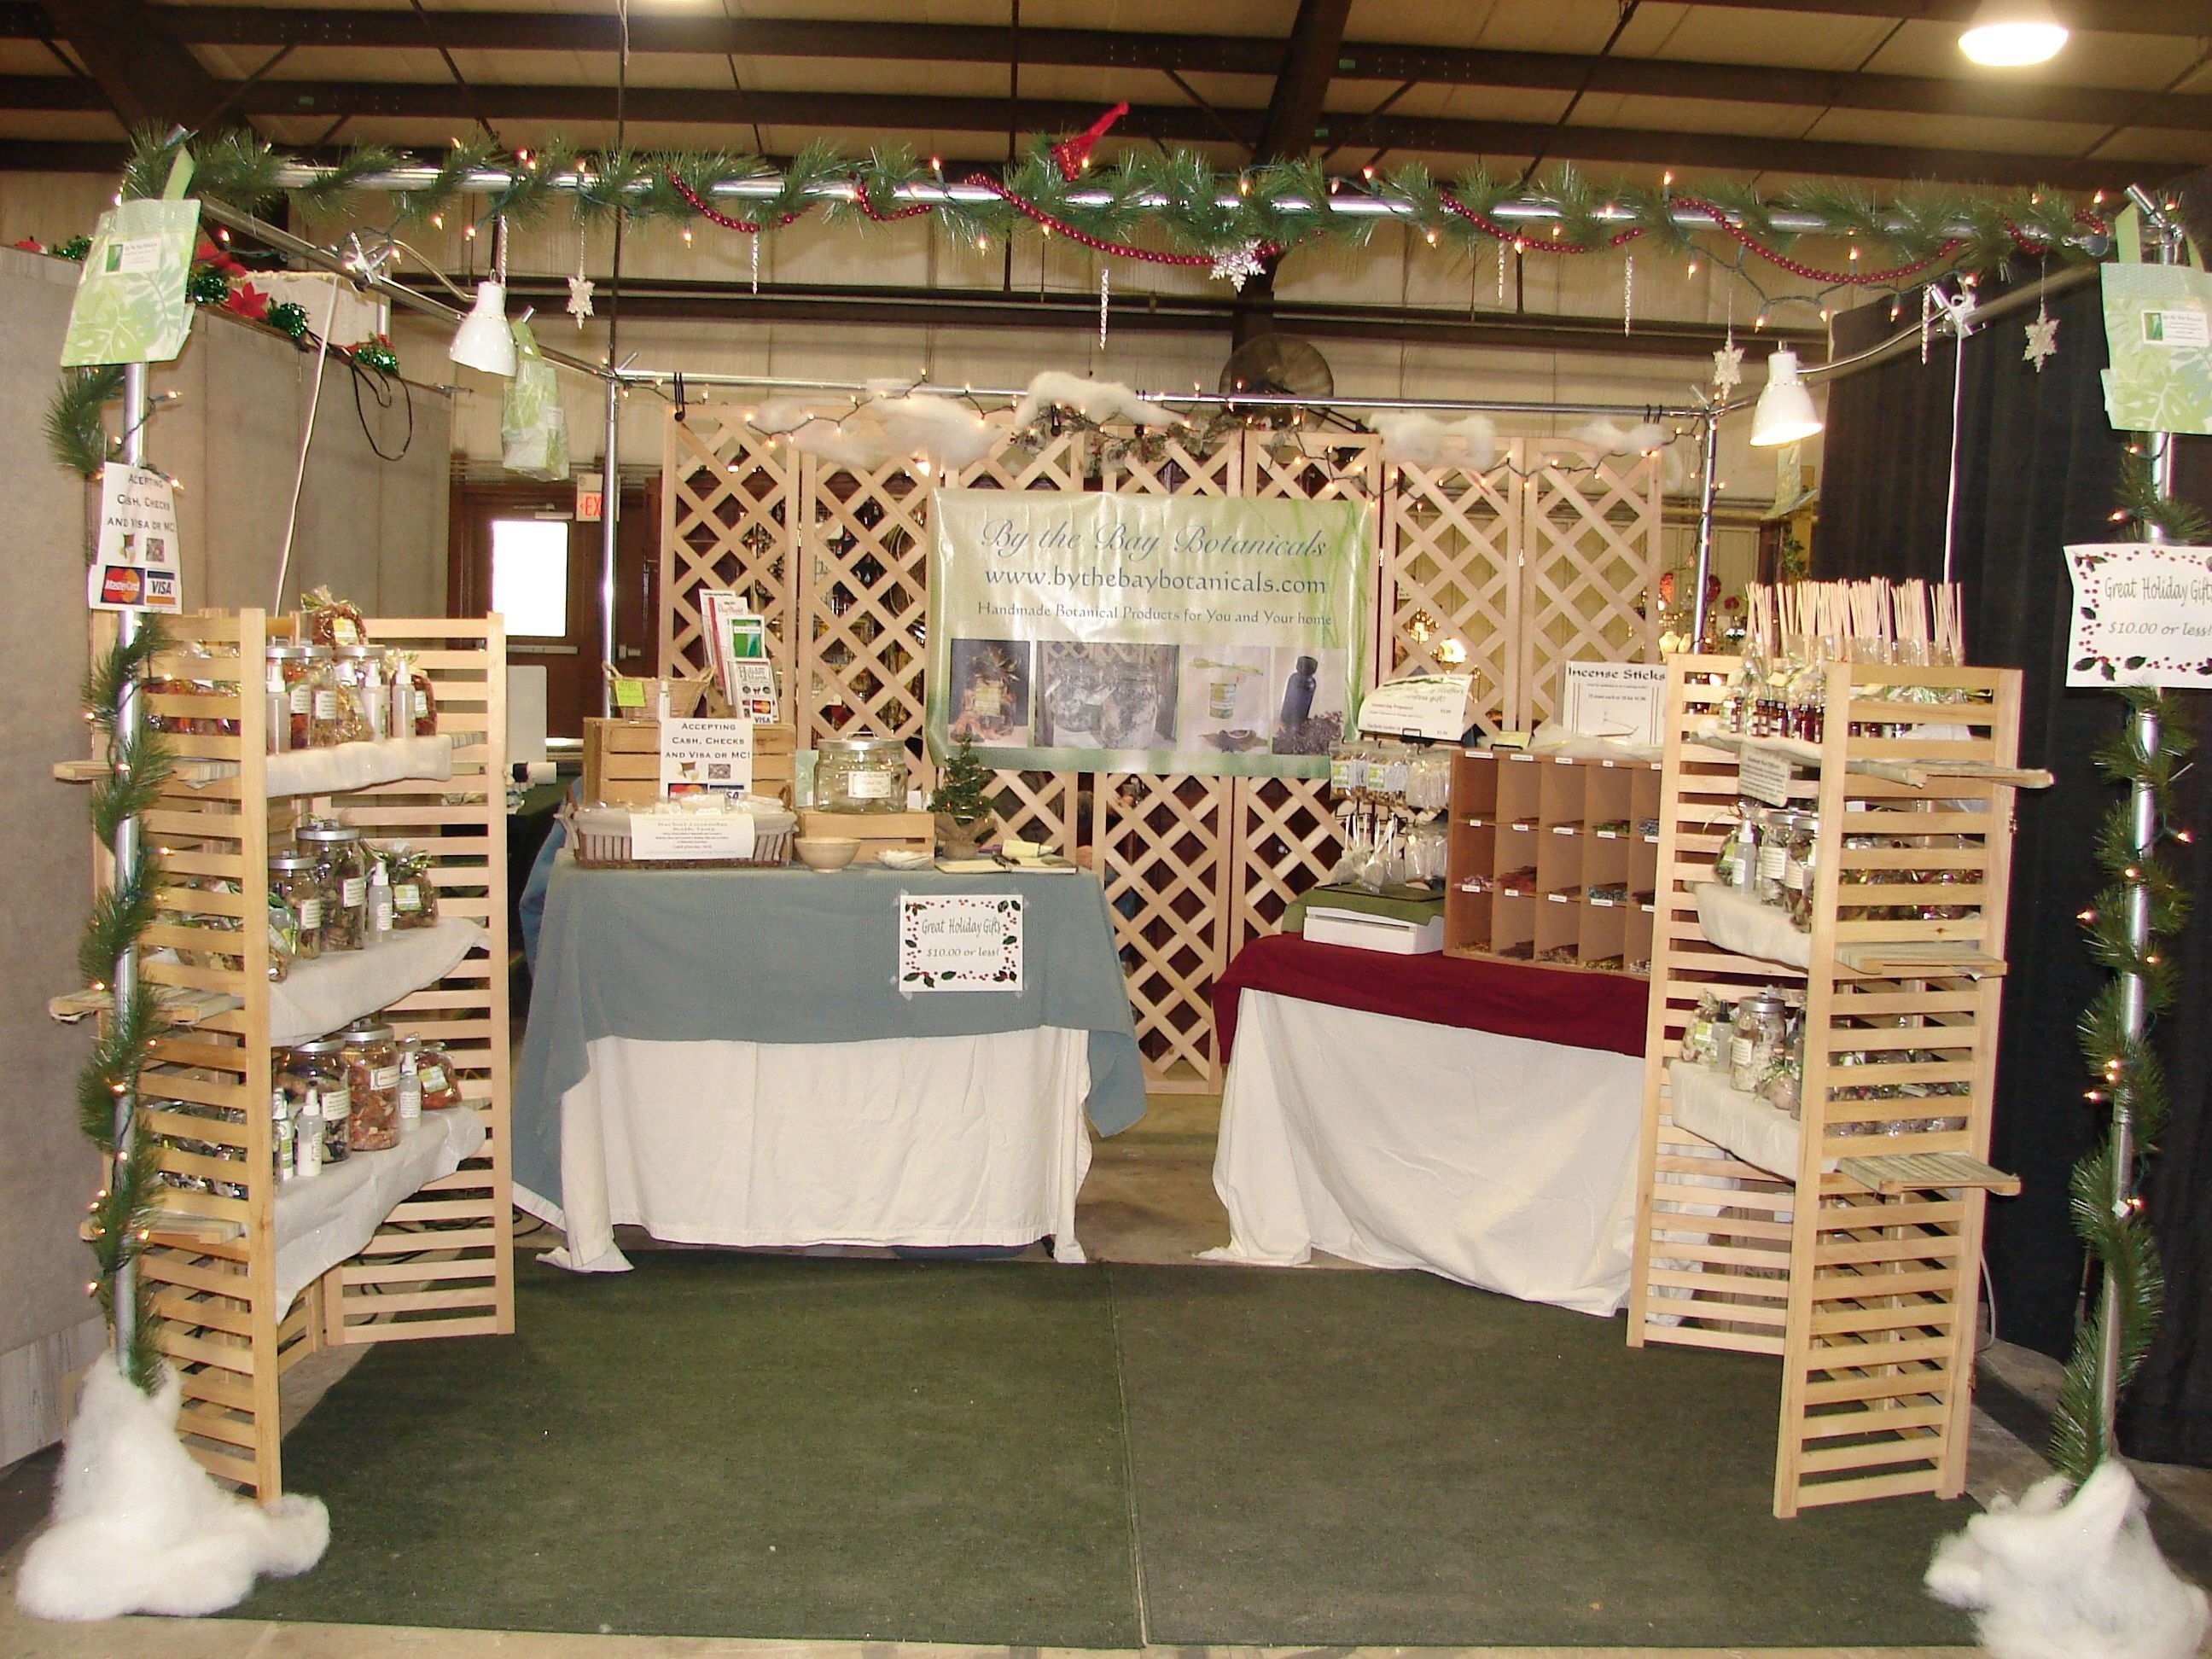 booth display ideas | craft & vendor booth | pinterest | craft booth